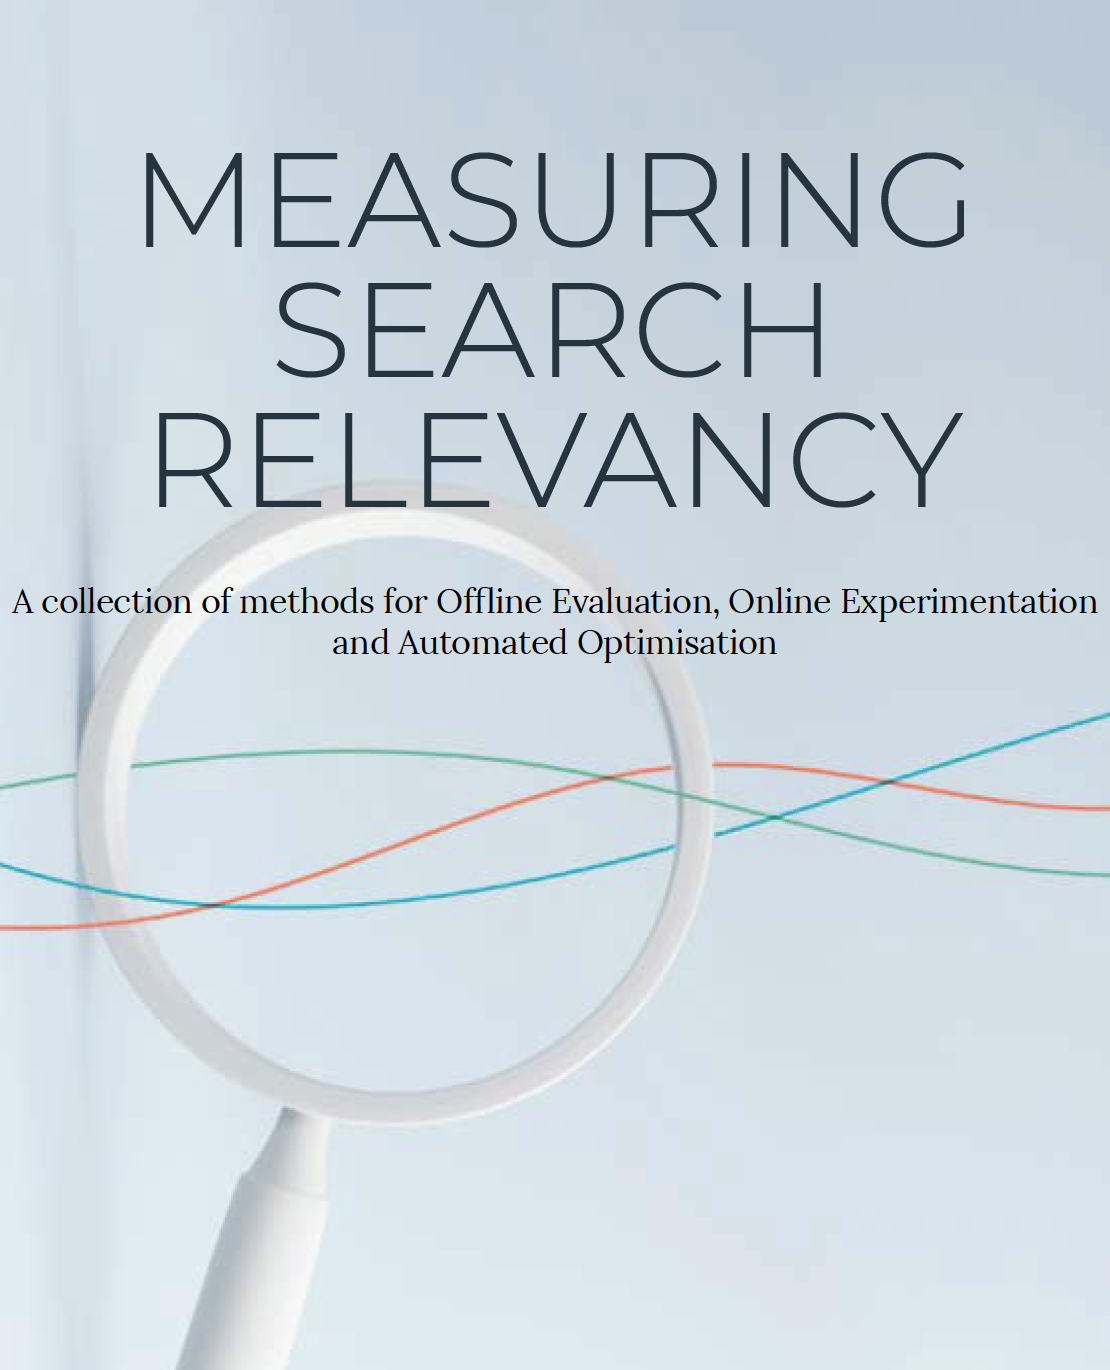 Measuring Search Relevancy